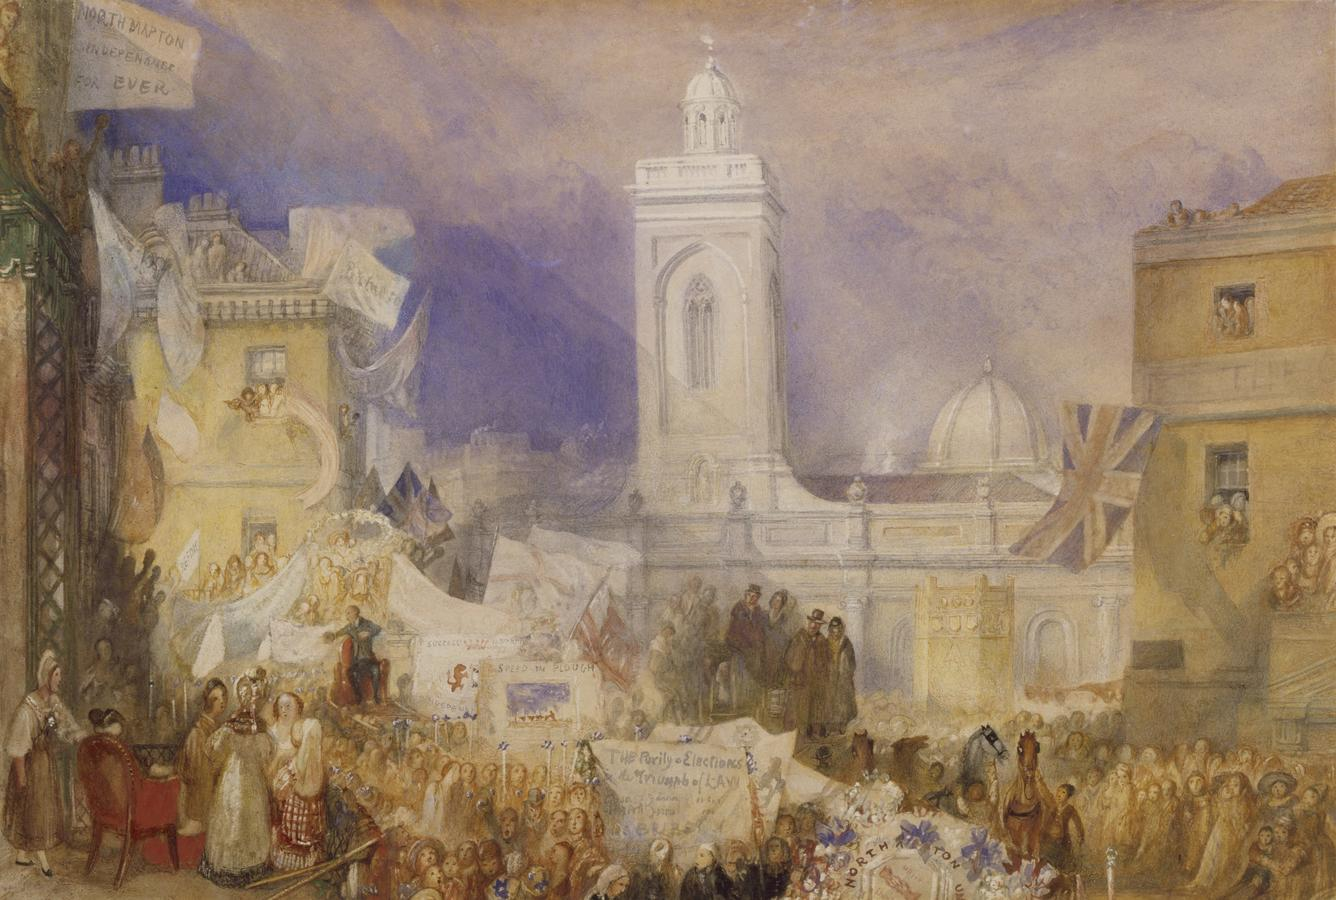 """J.M.W. Turner, """"The Northampton Election, 6 December 1830,"""" about 1830–1831, watercolor, gouache, and ink on paper, 11 1/2 x 17 1/4 in. Tate Britain, London, accepted by the nation as part of the Turner Bequest 1856, T12321. Photo: © Tate, London, 2020"""